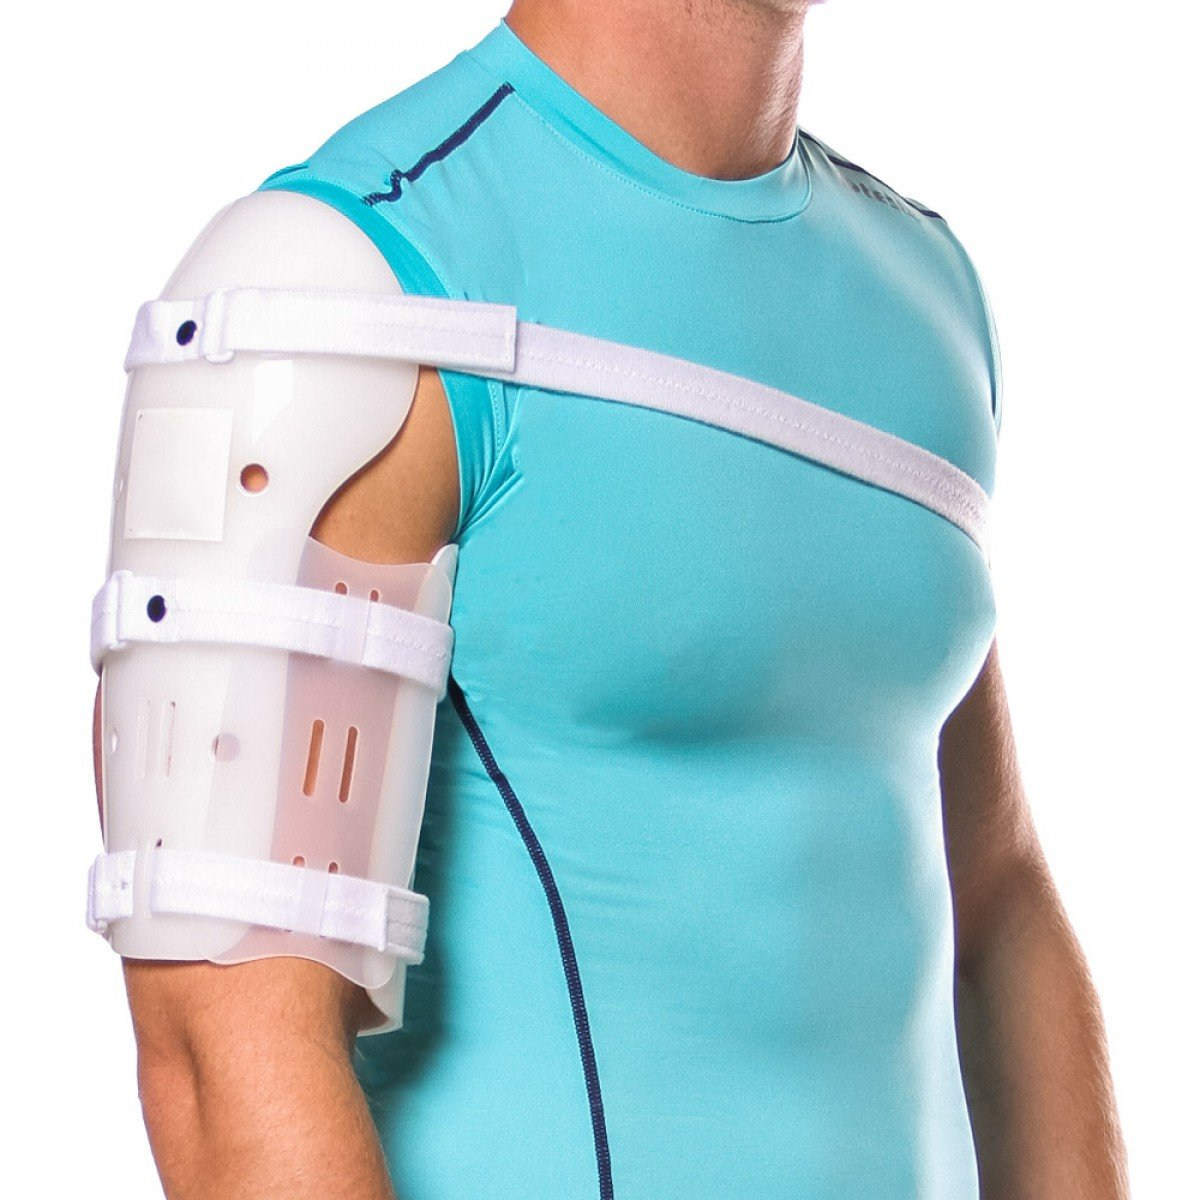 Amazon Sarmiento Brace For Humeral Shaft Fracture Xl Health